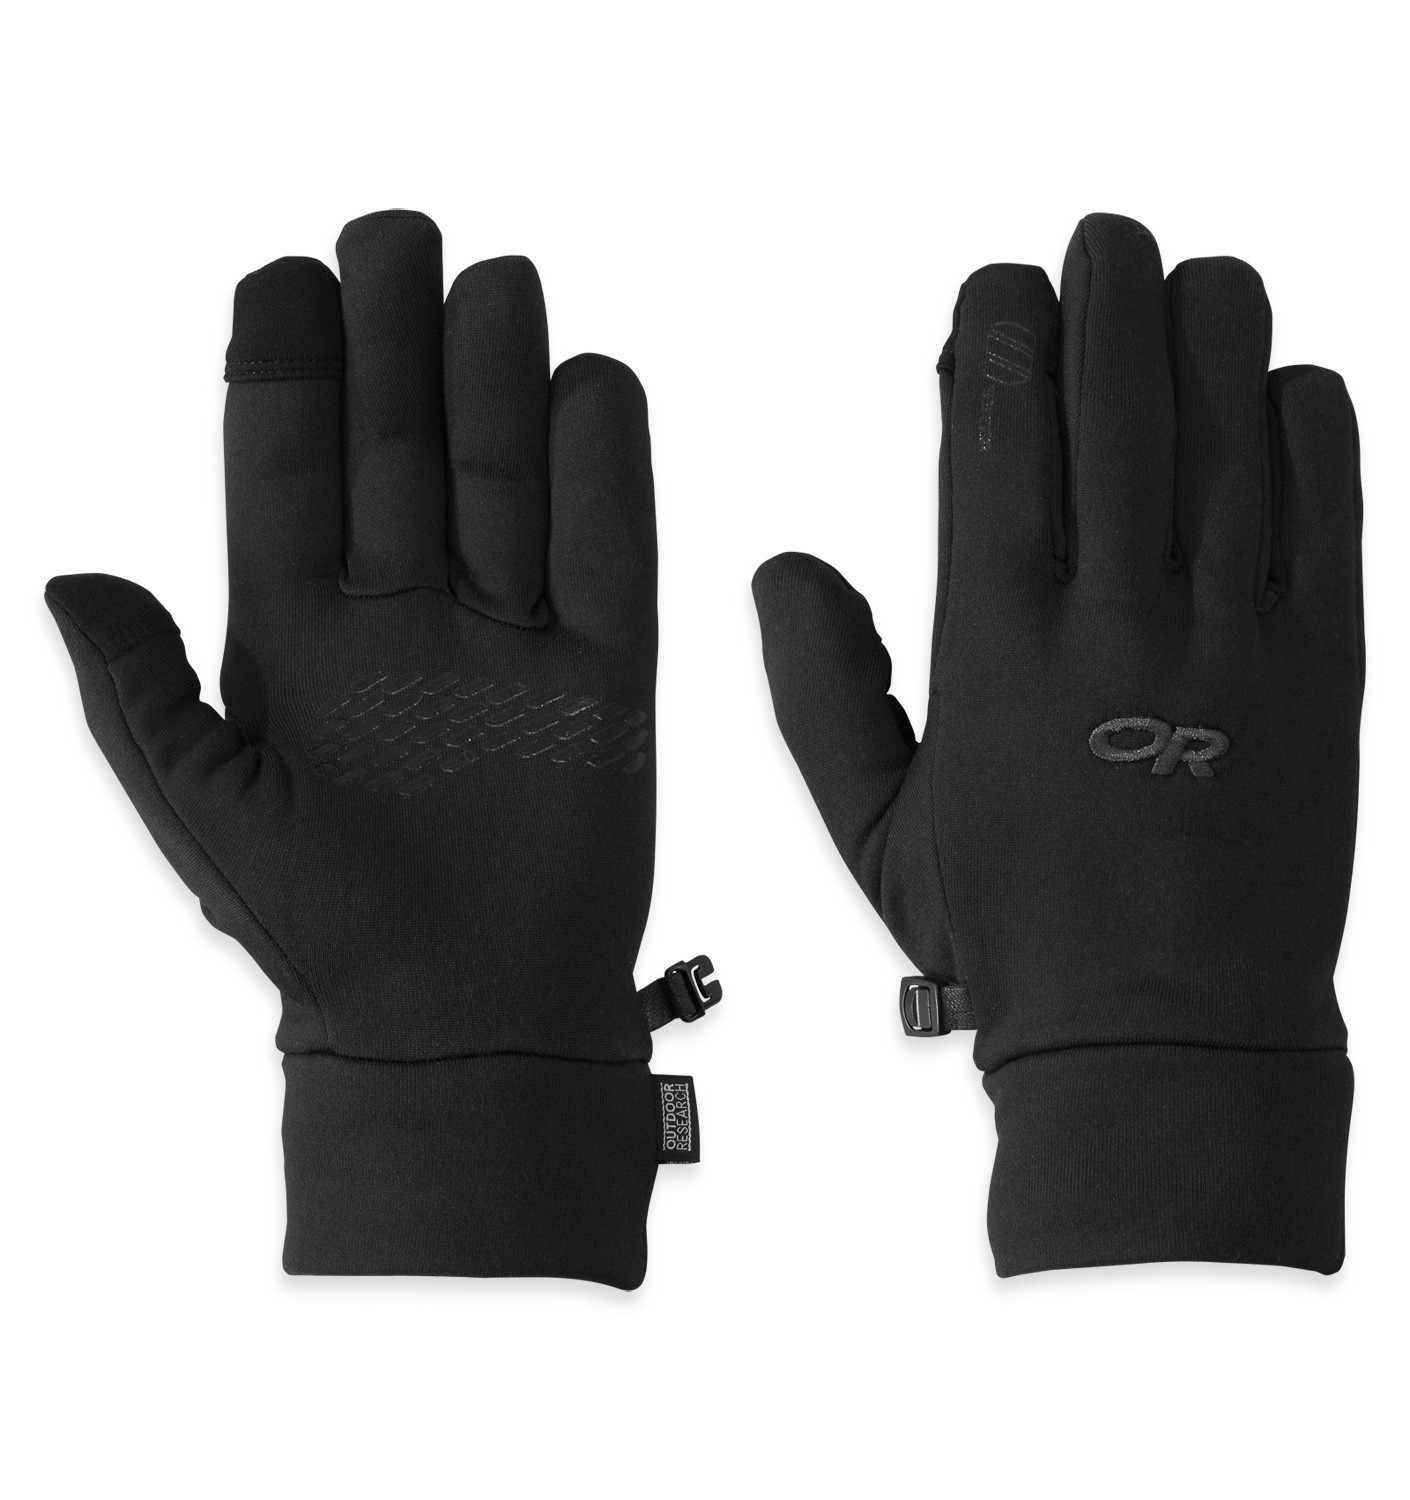 Outdoor Research Men's PL 150 Sensor Gloves